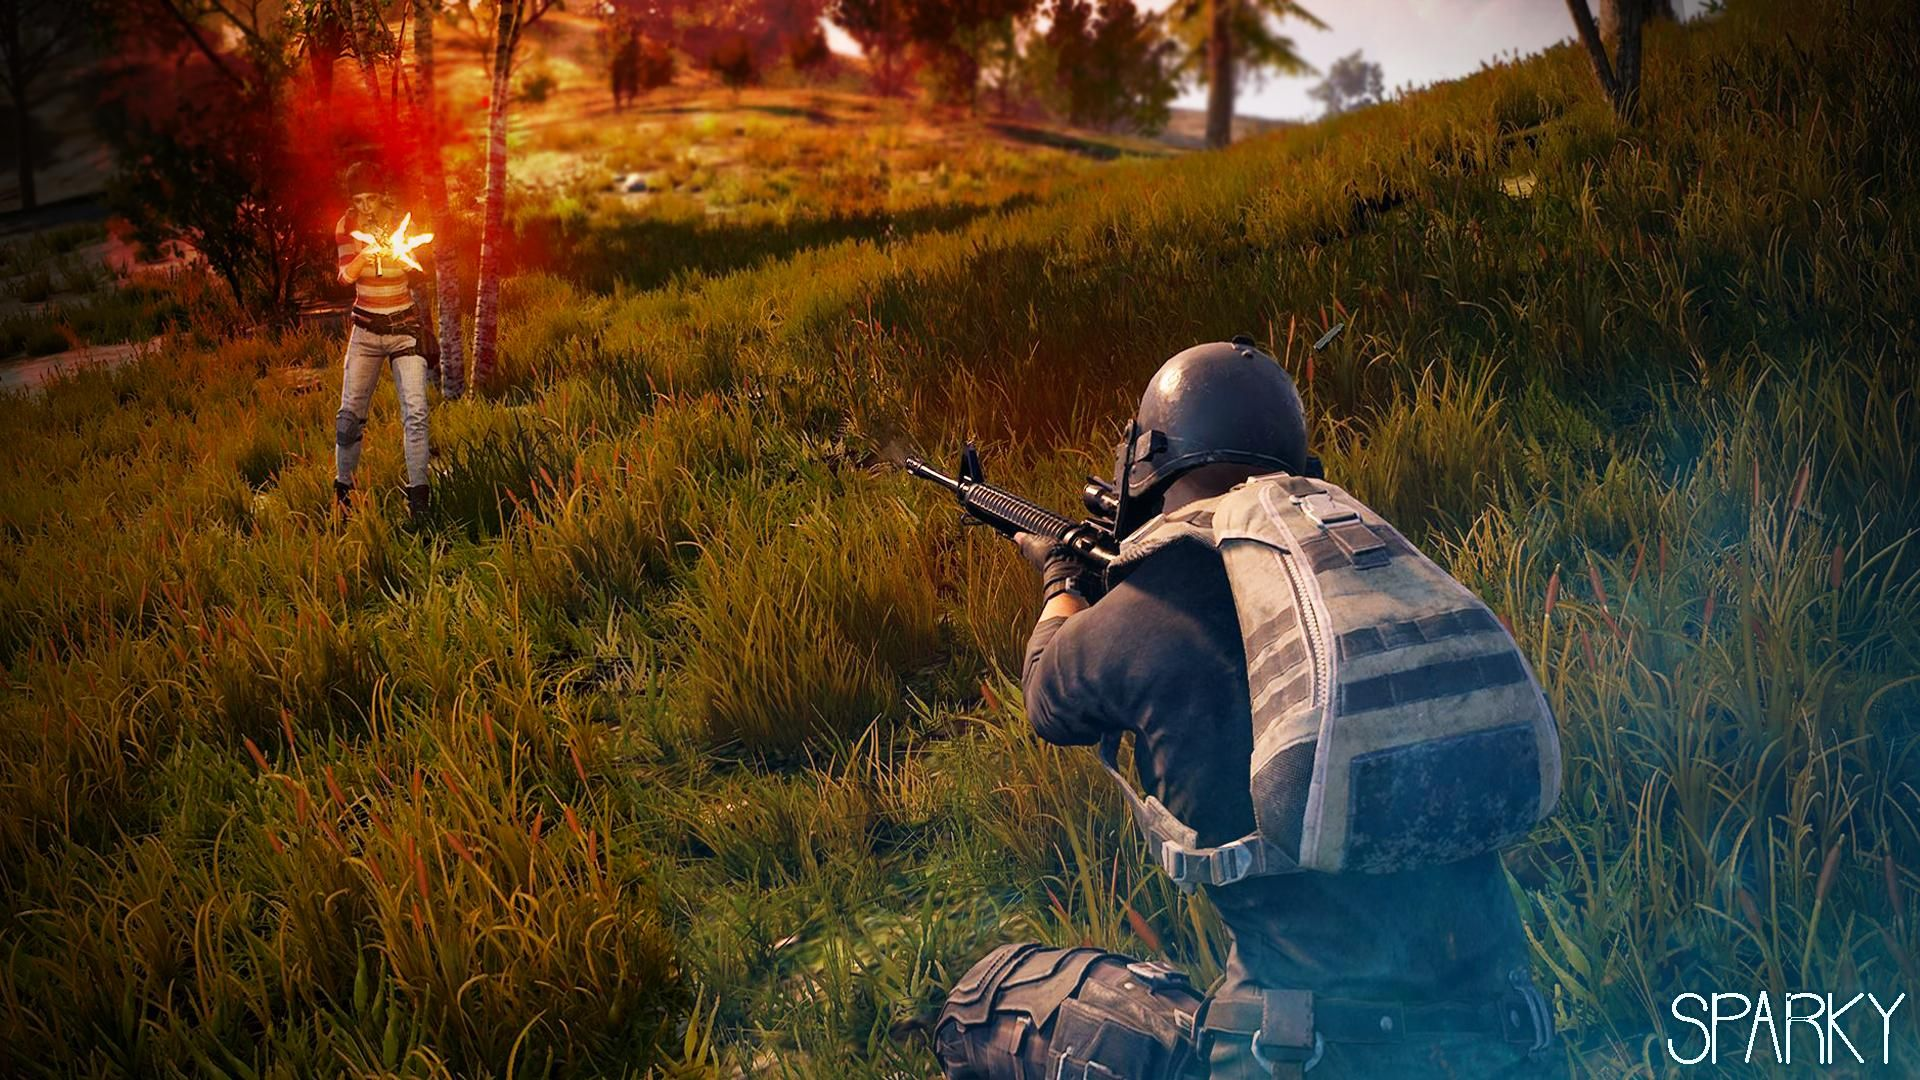 Pubg Full Hd 4k Wallpaper For Mobile: Pin On IPhone 6S Plus Wallpapers Must To Have